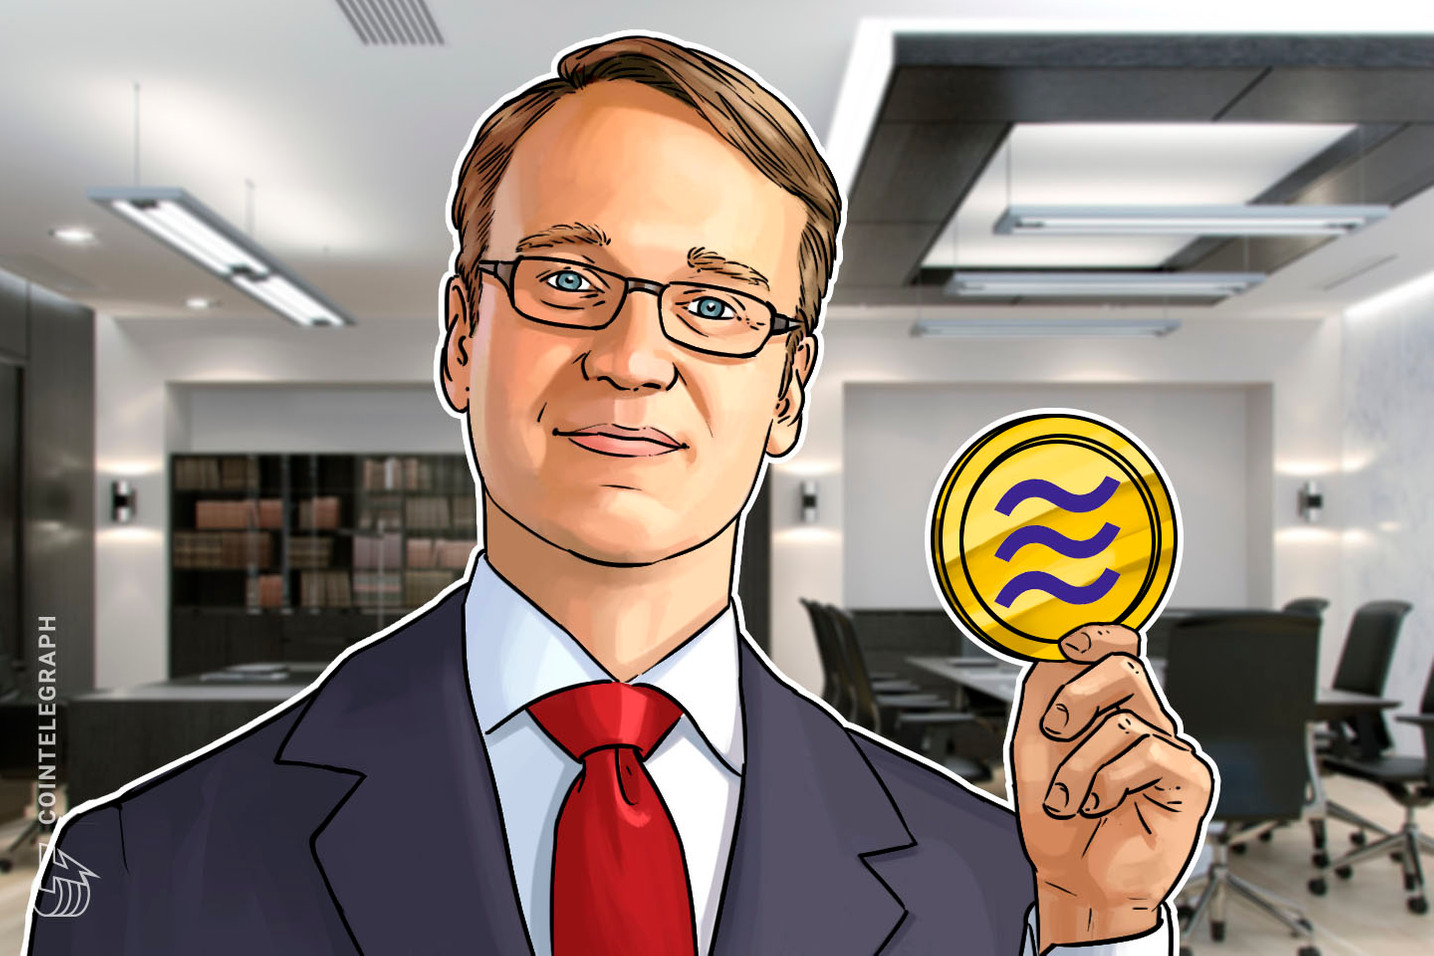 Bundesbank Head Says Don't Suppress 'Innovative Concepts' Like Libra